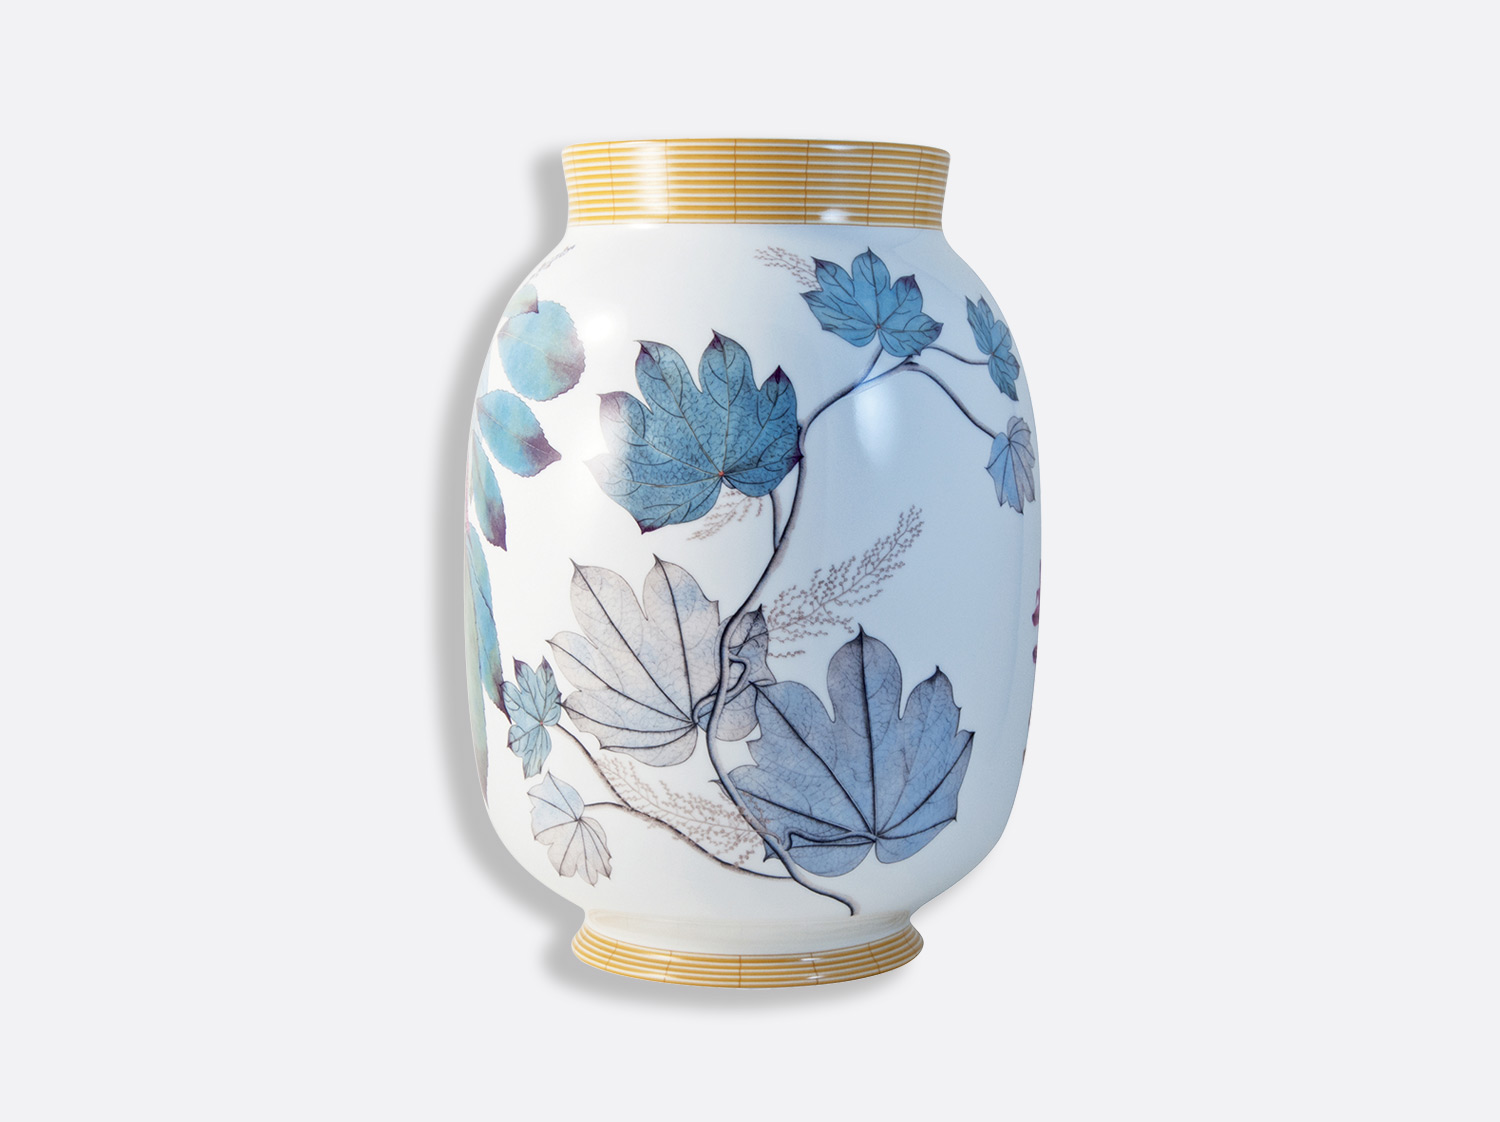 Vase toscan H. 33,5 cm en porcelaine de la collection Jardin indien Bernardaud